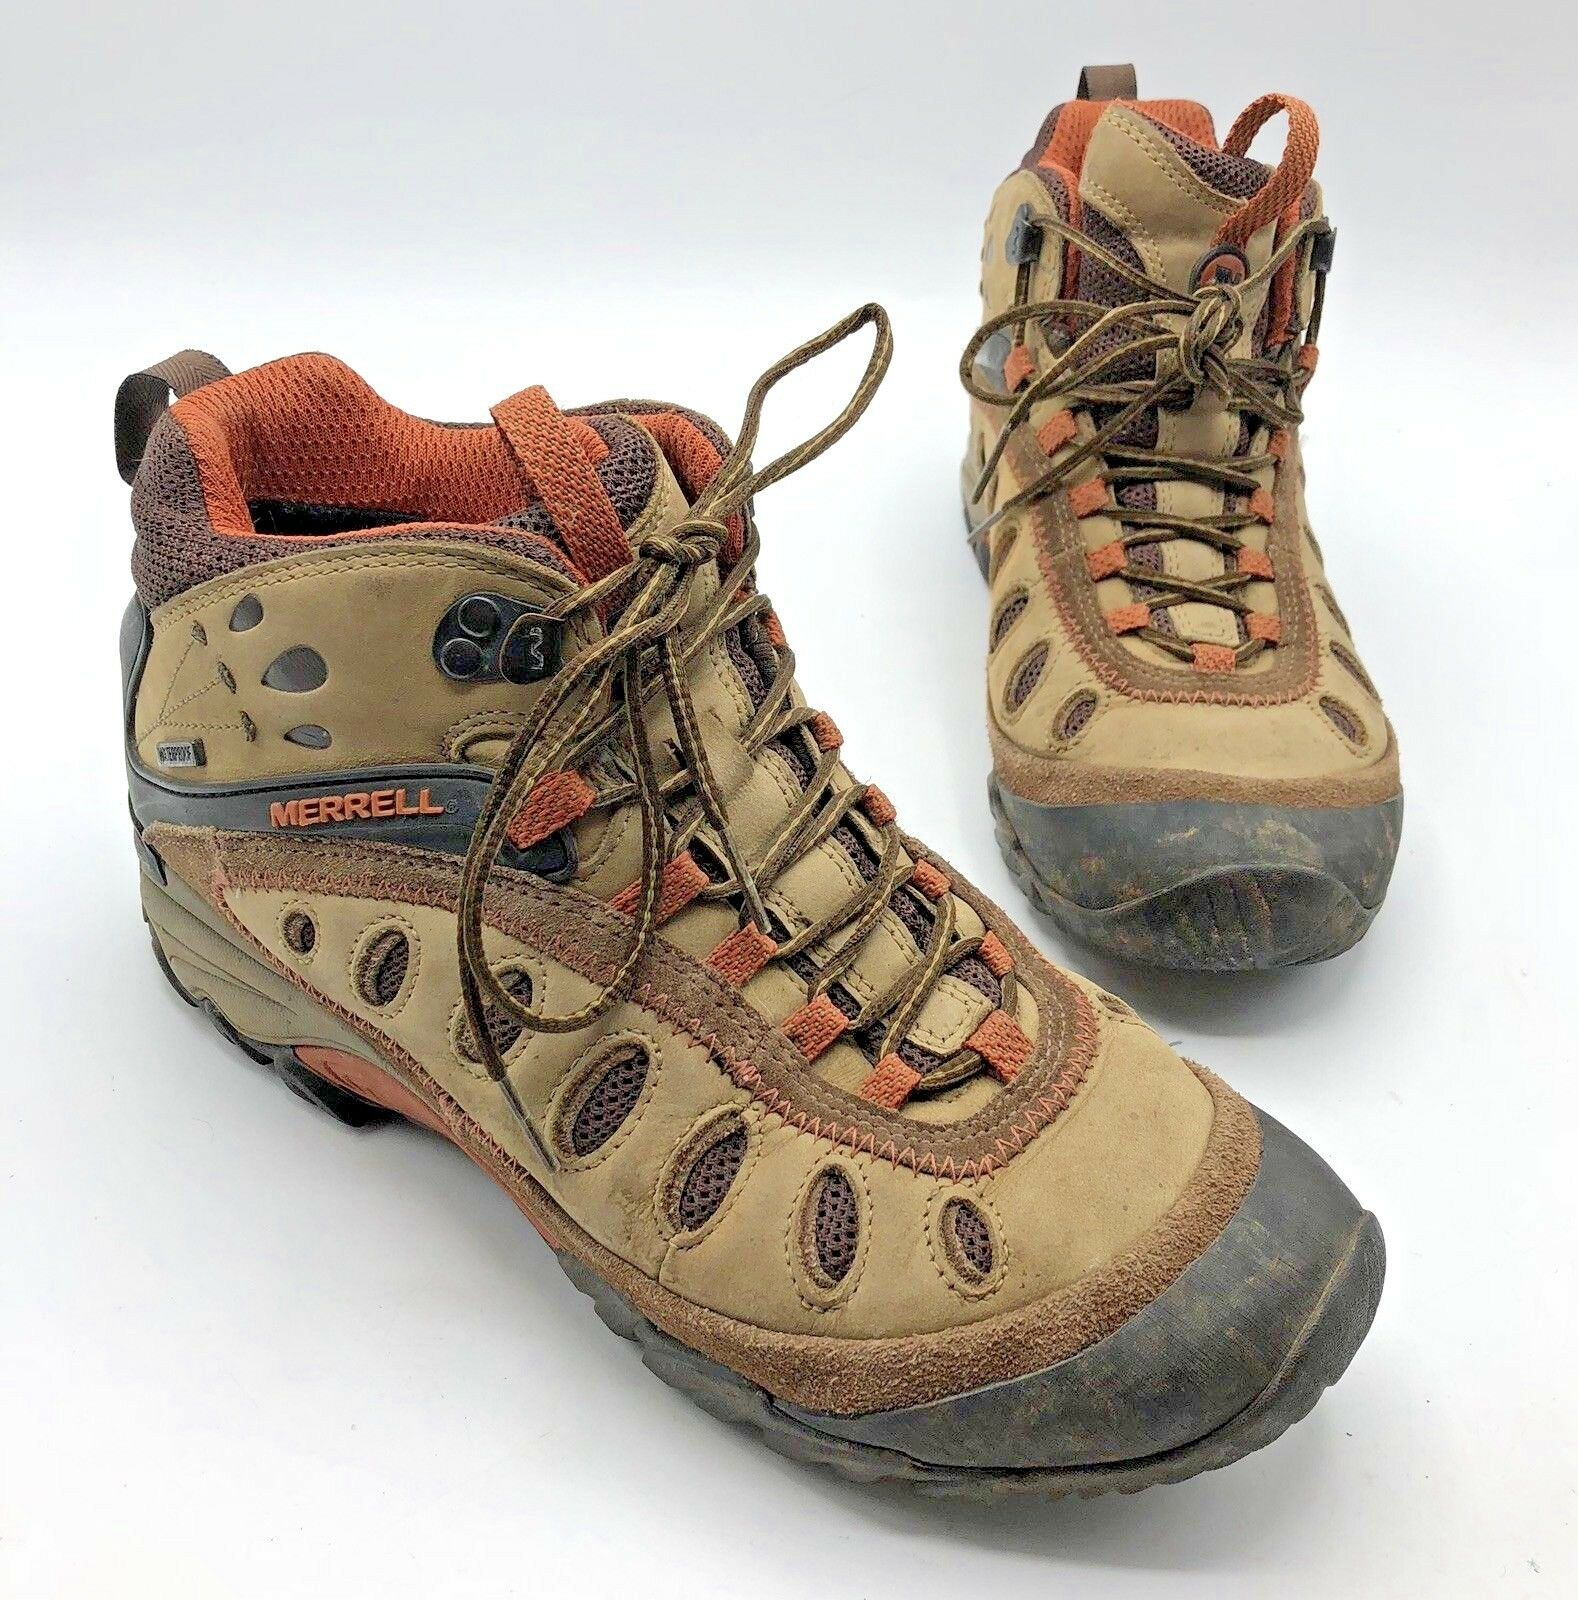 Merrell Chameleon Arc 2 Mid Women Brown Tan Hiking shoes Size 9.5 Pre Owned